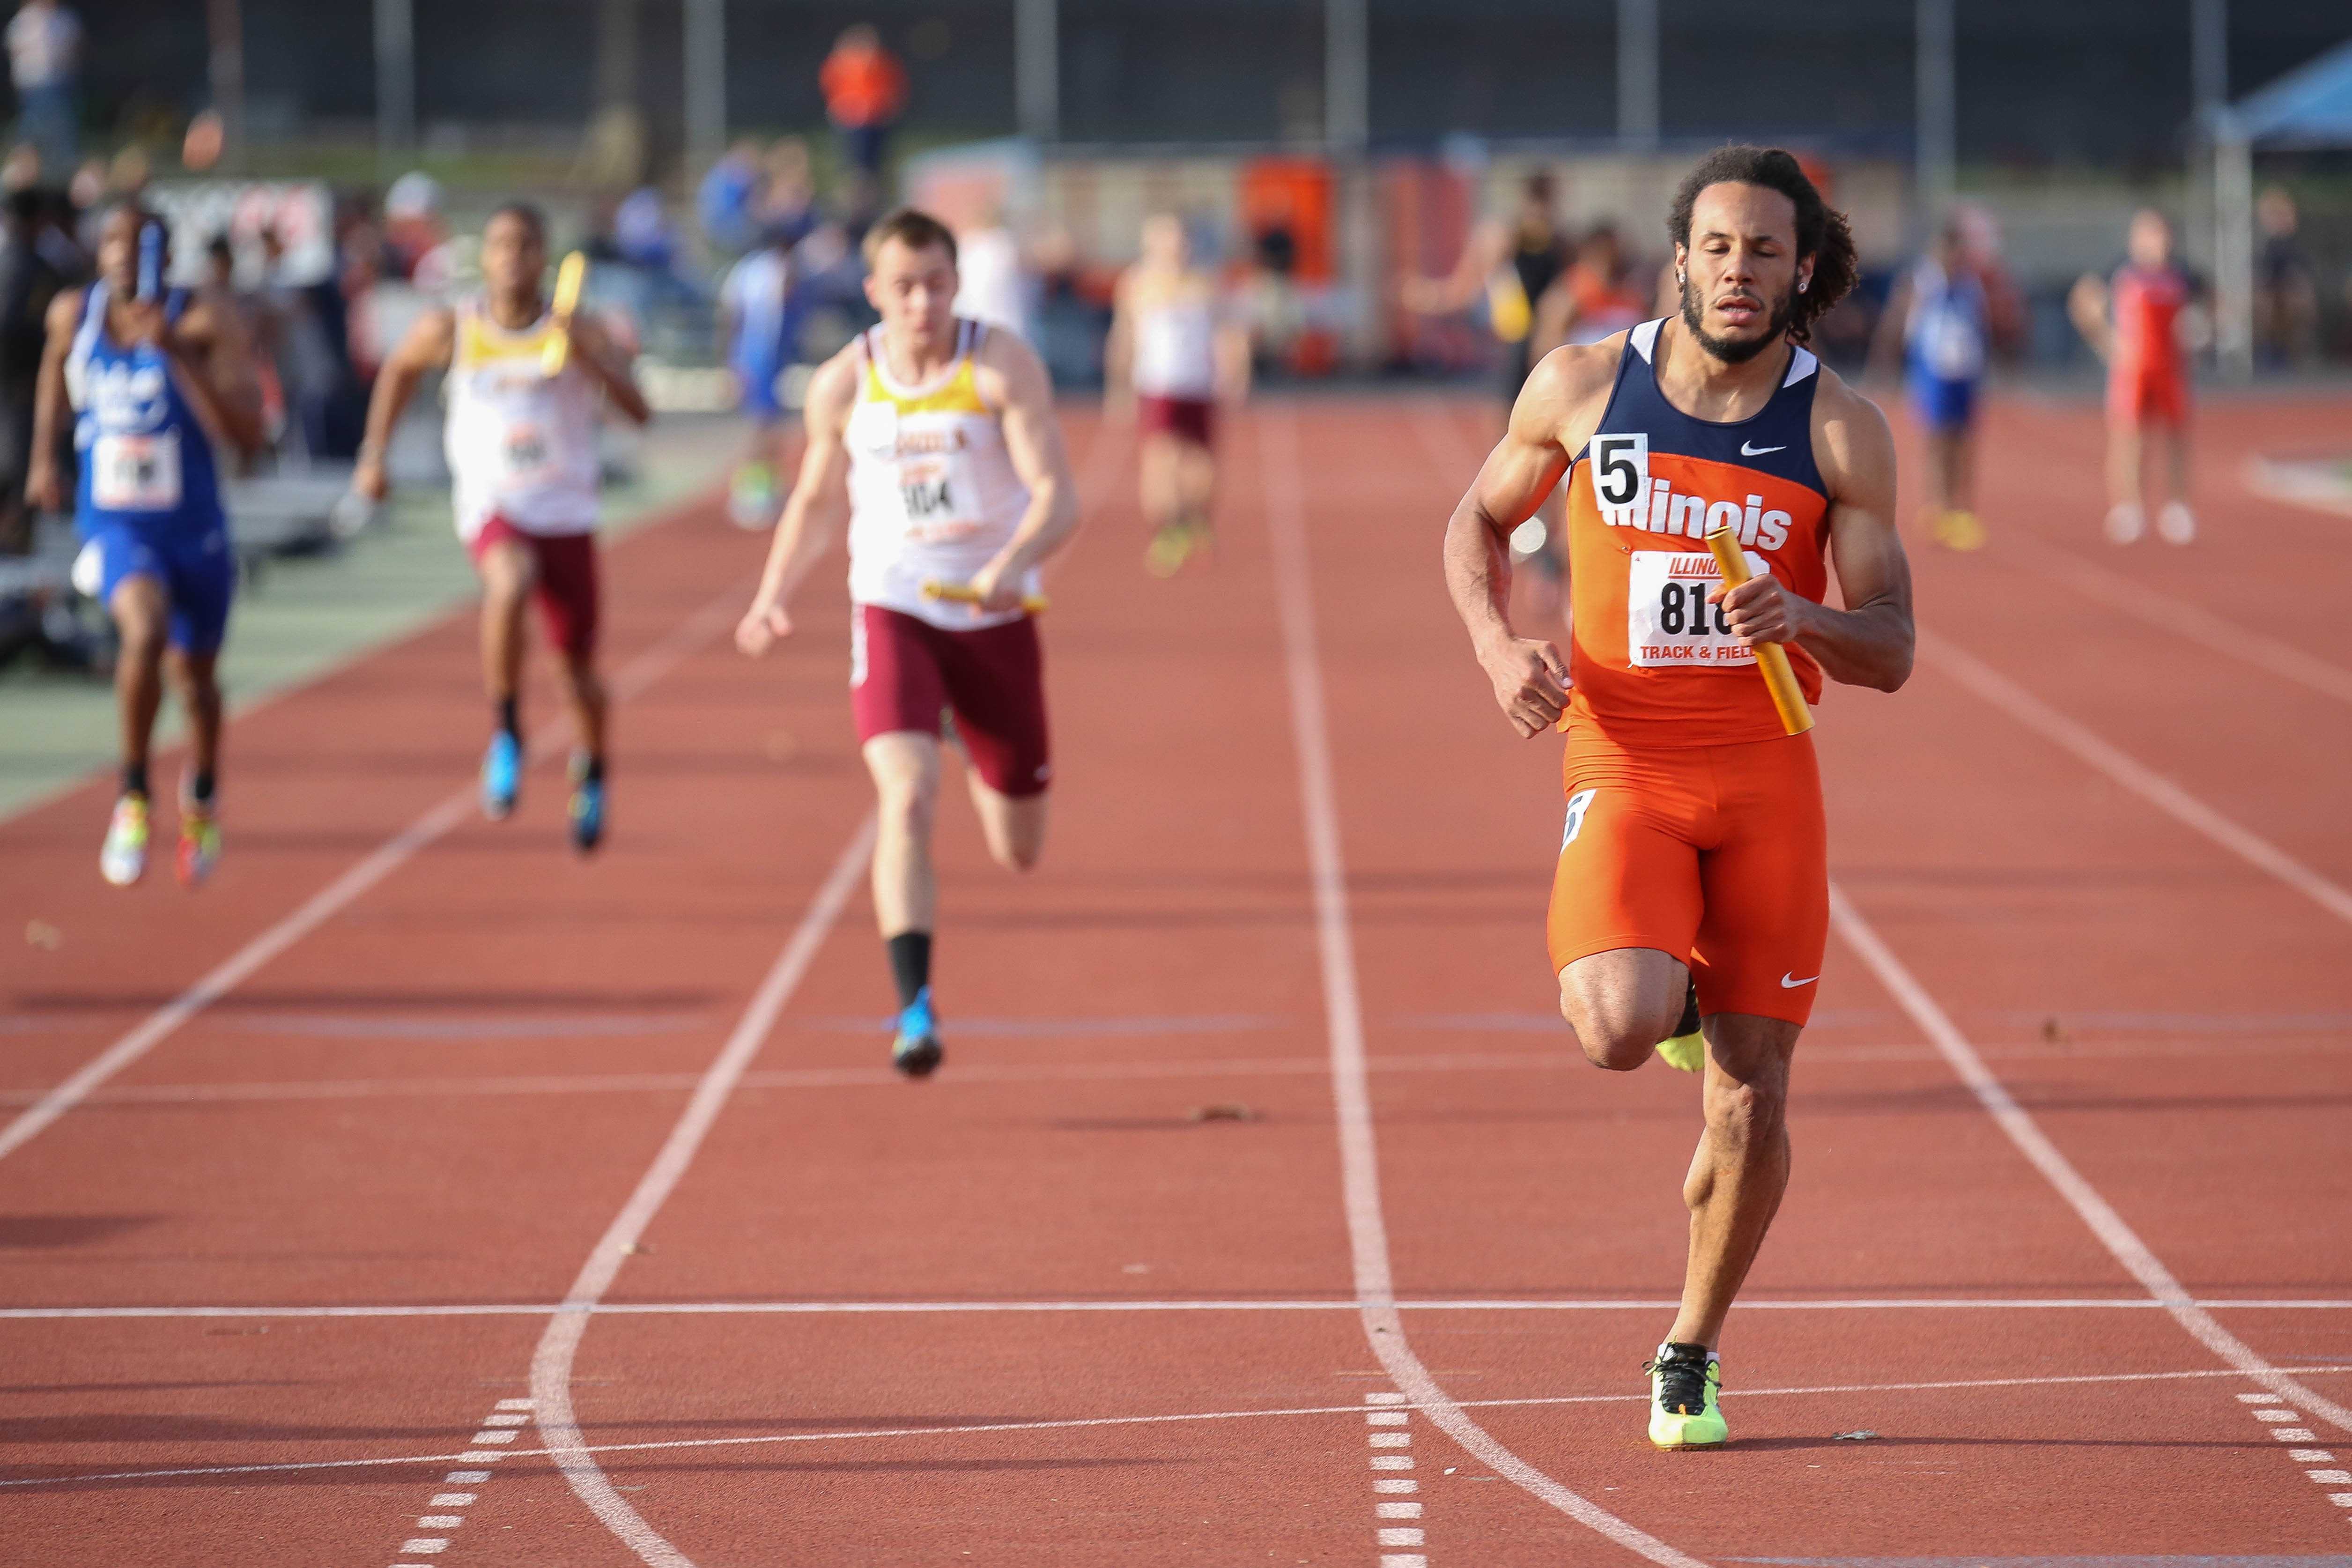 Illinois' DJ Zhan crosses the finish line to win the 4x100 meter relay during the Illinois Twilight Track and Field meet at Illinois Soccer and Track Stadium on Saturday, April 12, 2014.